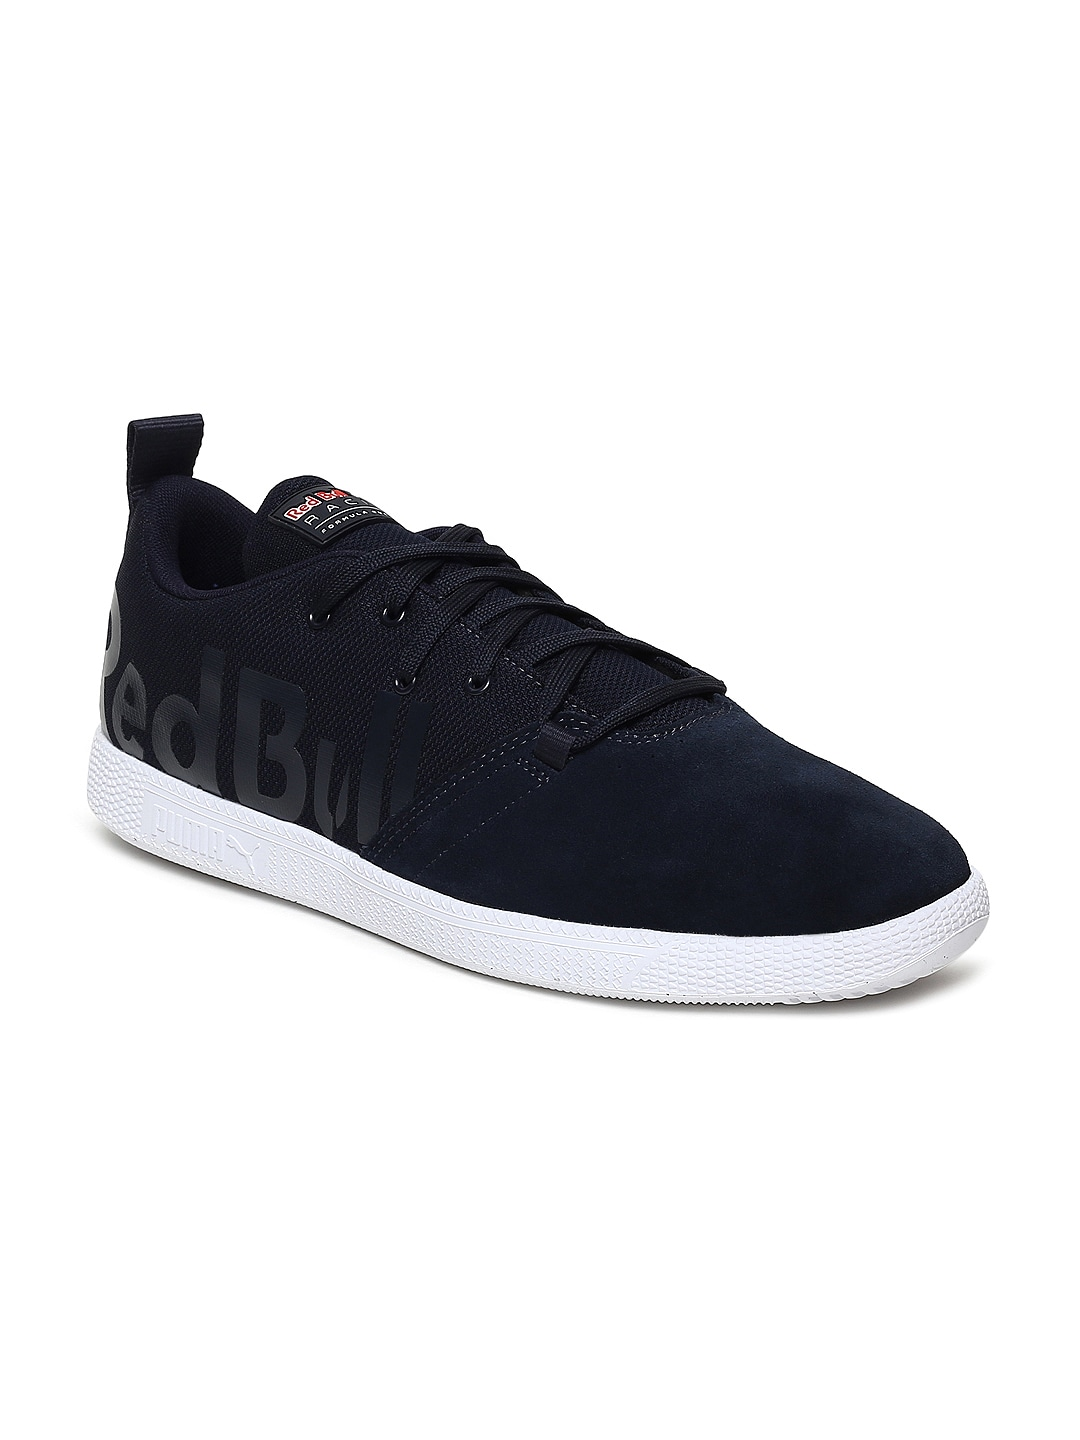 Navy Blue RBR Cups Lo Sneakers